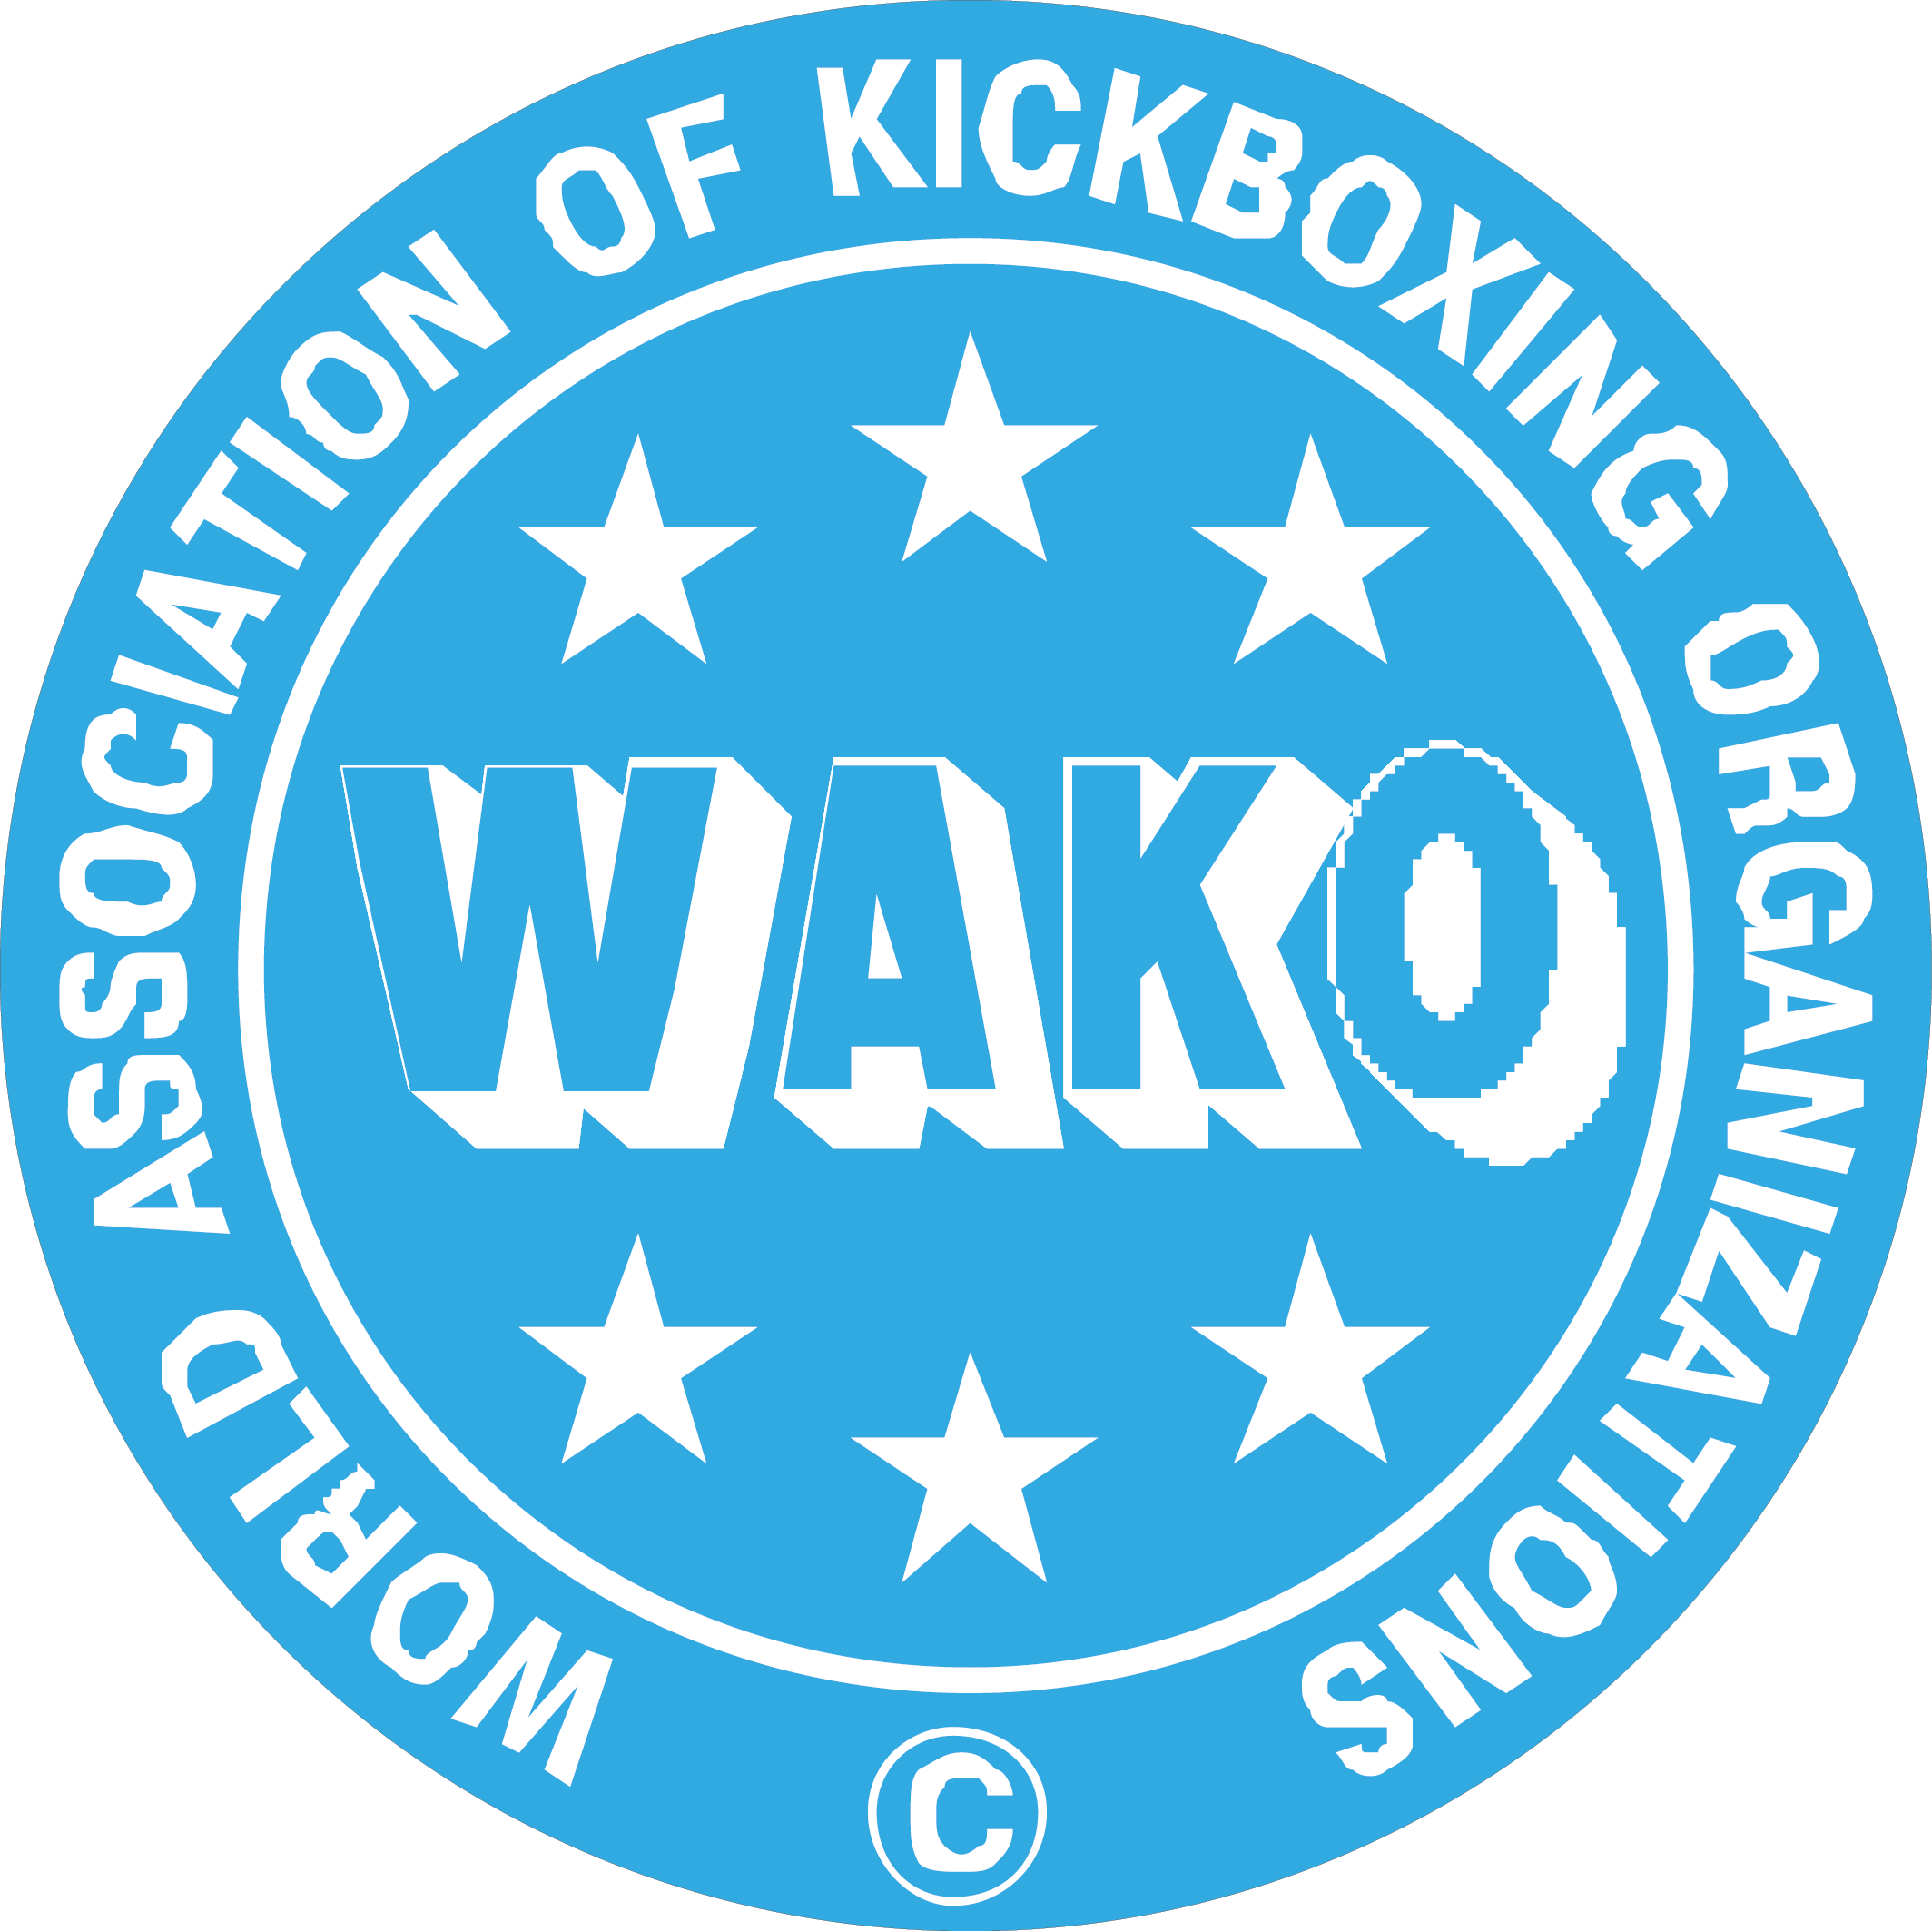 World Association of Kickboxing Organisations WAKO logo